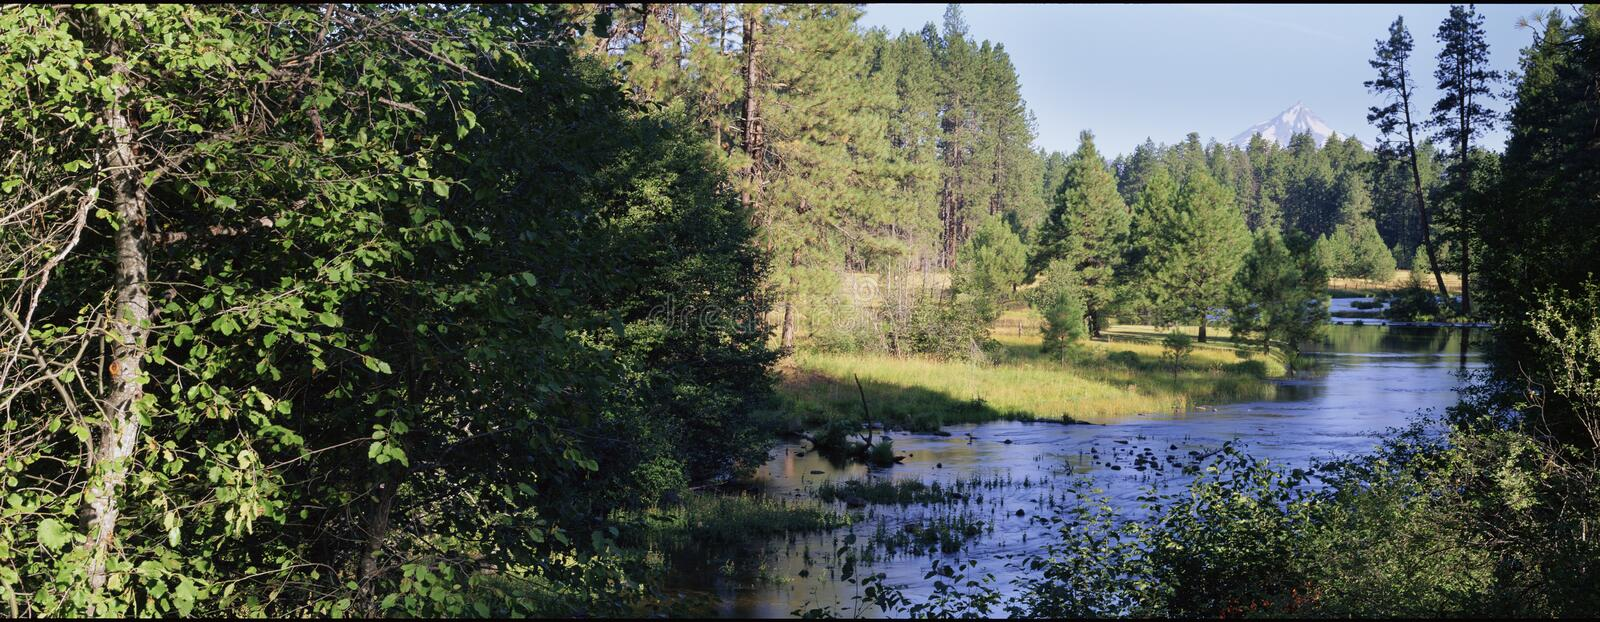 Headwaters of the Metolius River stock photography